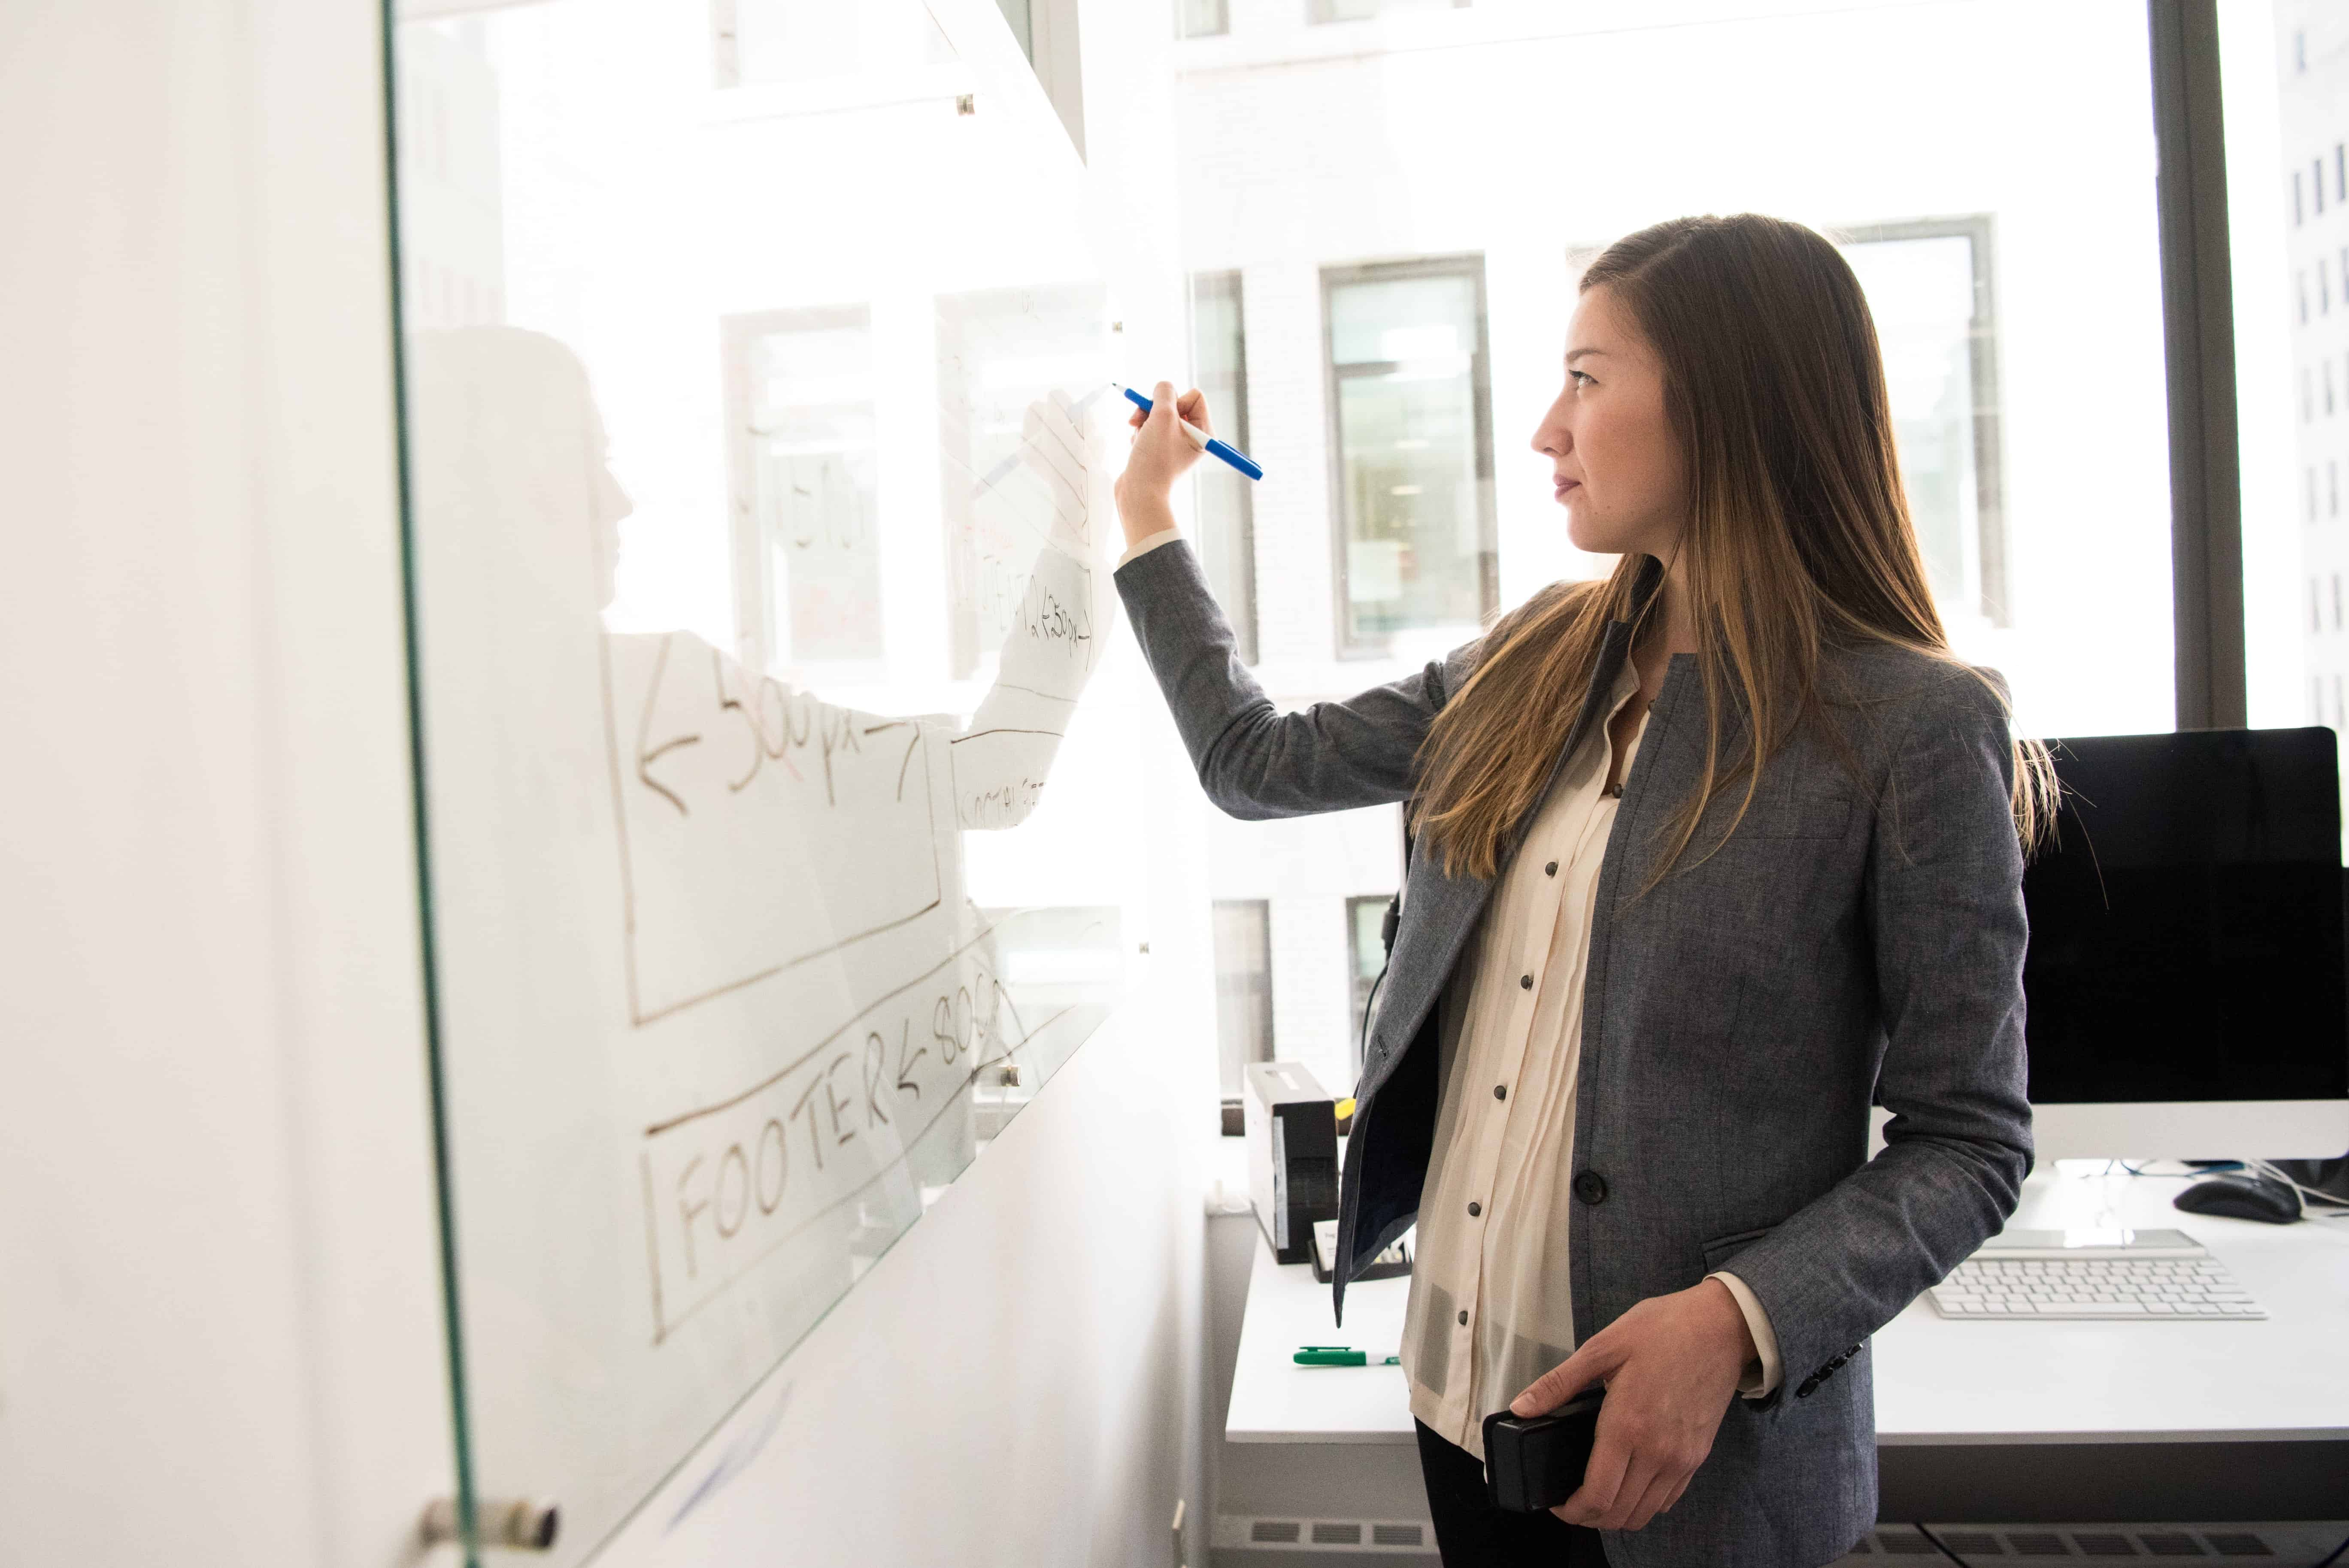 A woman writing on a whiteboard and motivating her employees.